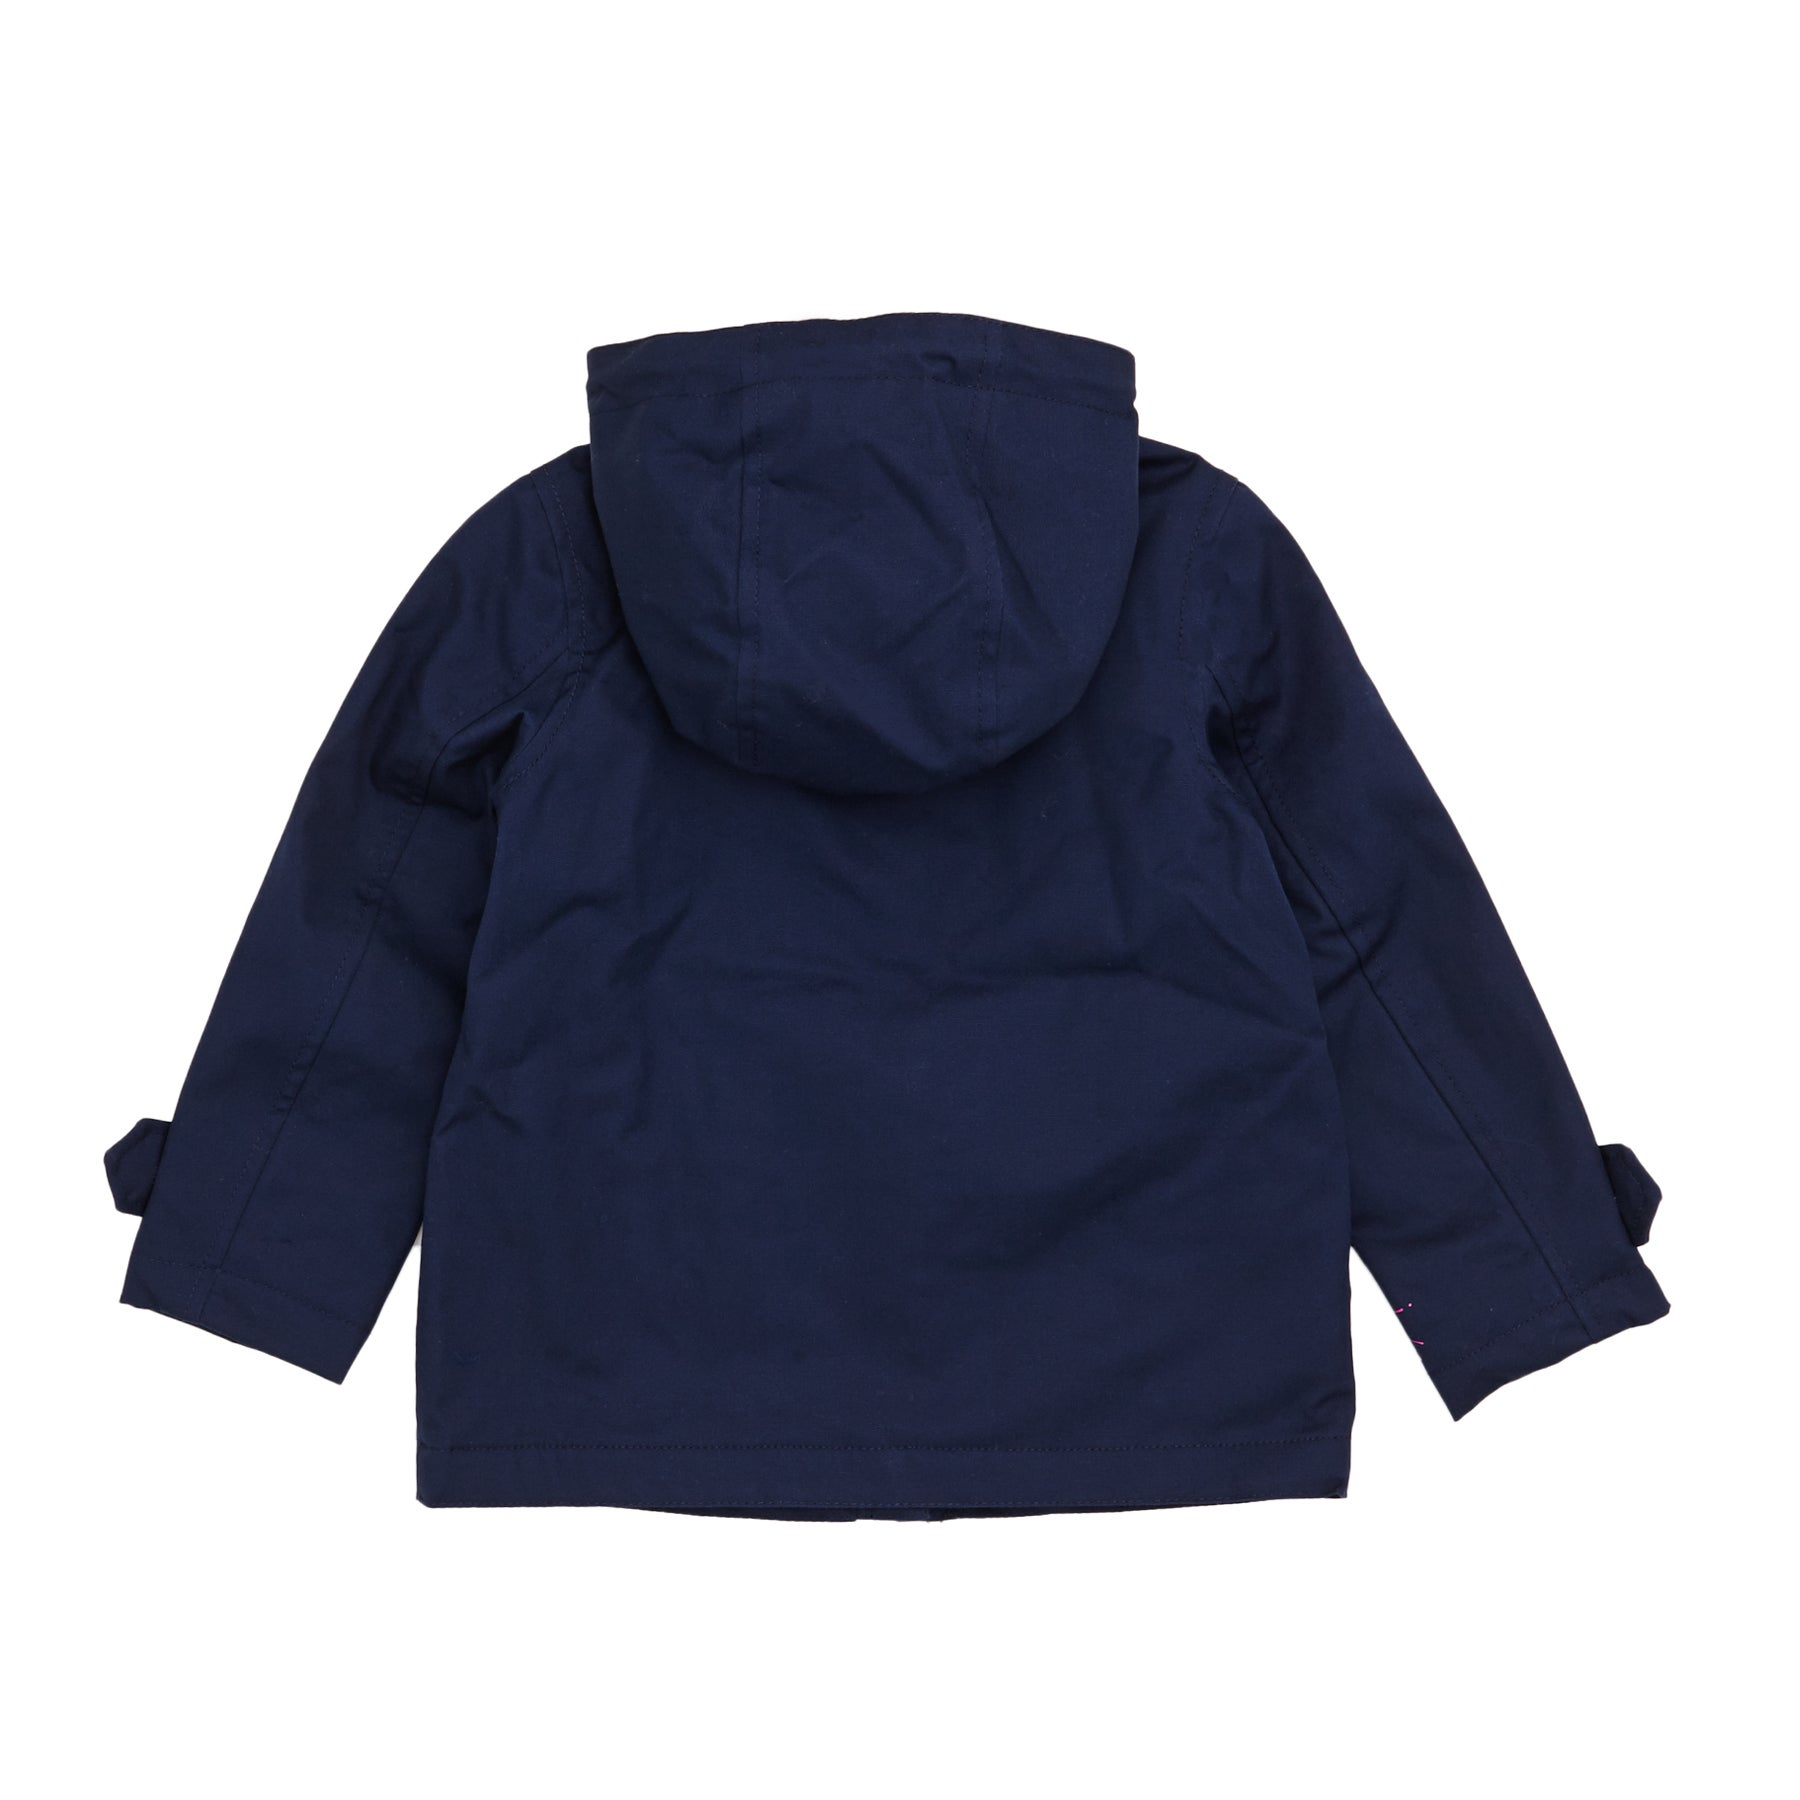 Disponible Joules Waterproof Coast Girls Surfdome De Niño Chaqueta PBqHXX